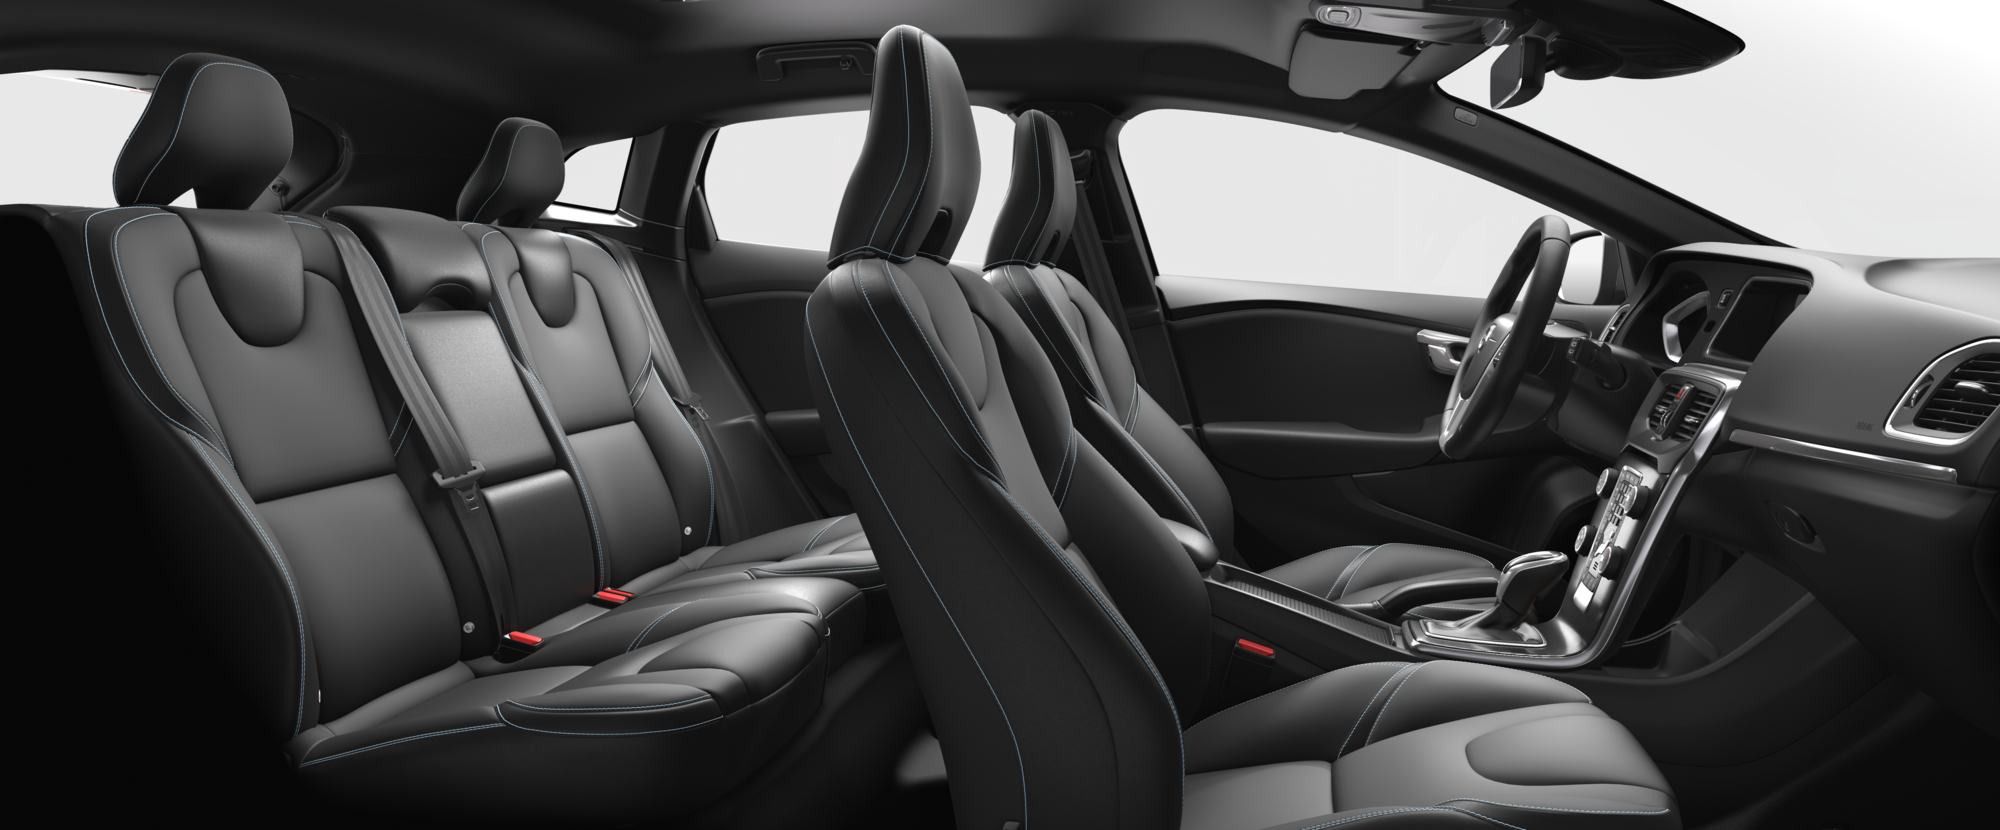 Interior shot of the Volvo V40 with Charcoal T-Tec Seats